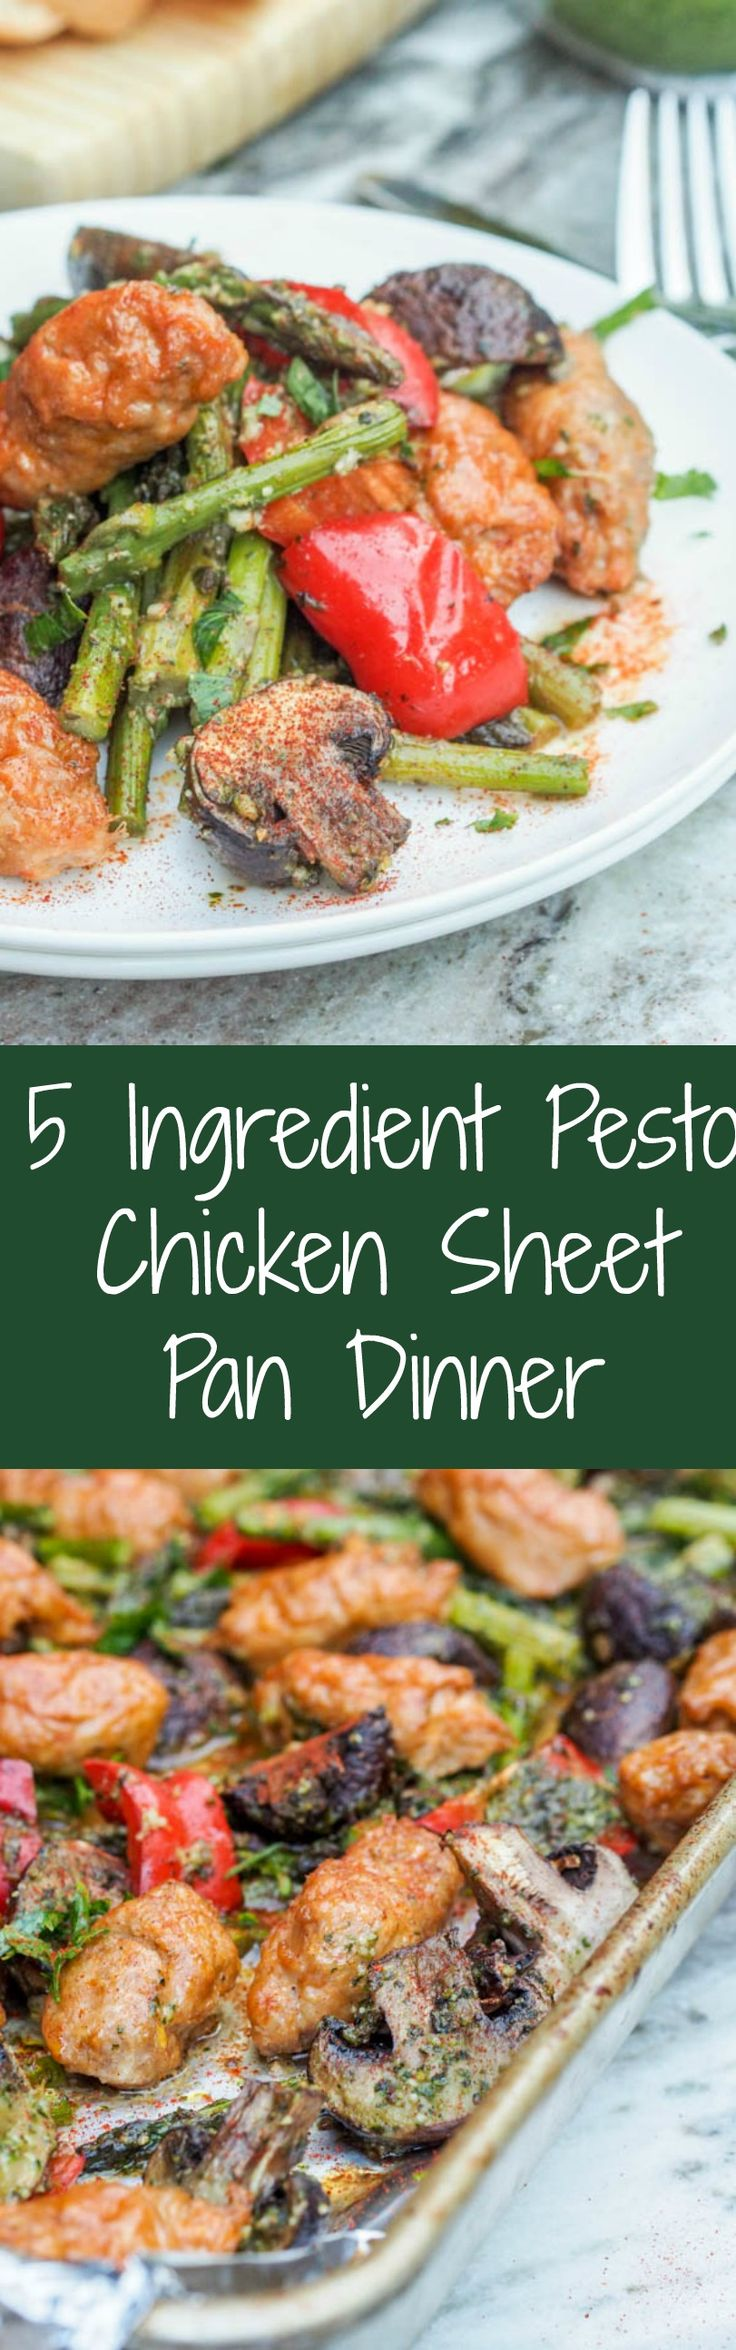 Looking for a healthy, low fuss minimal clean up weeknight dinner? Make this pesto chicken sheet pan dinner with veggies. Prep takes minutes with just a cutting board. Everything cooks together in the oven while you wait! Gluten Free and Dairy Free. | avocadopesto.com